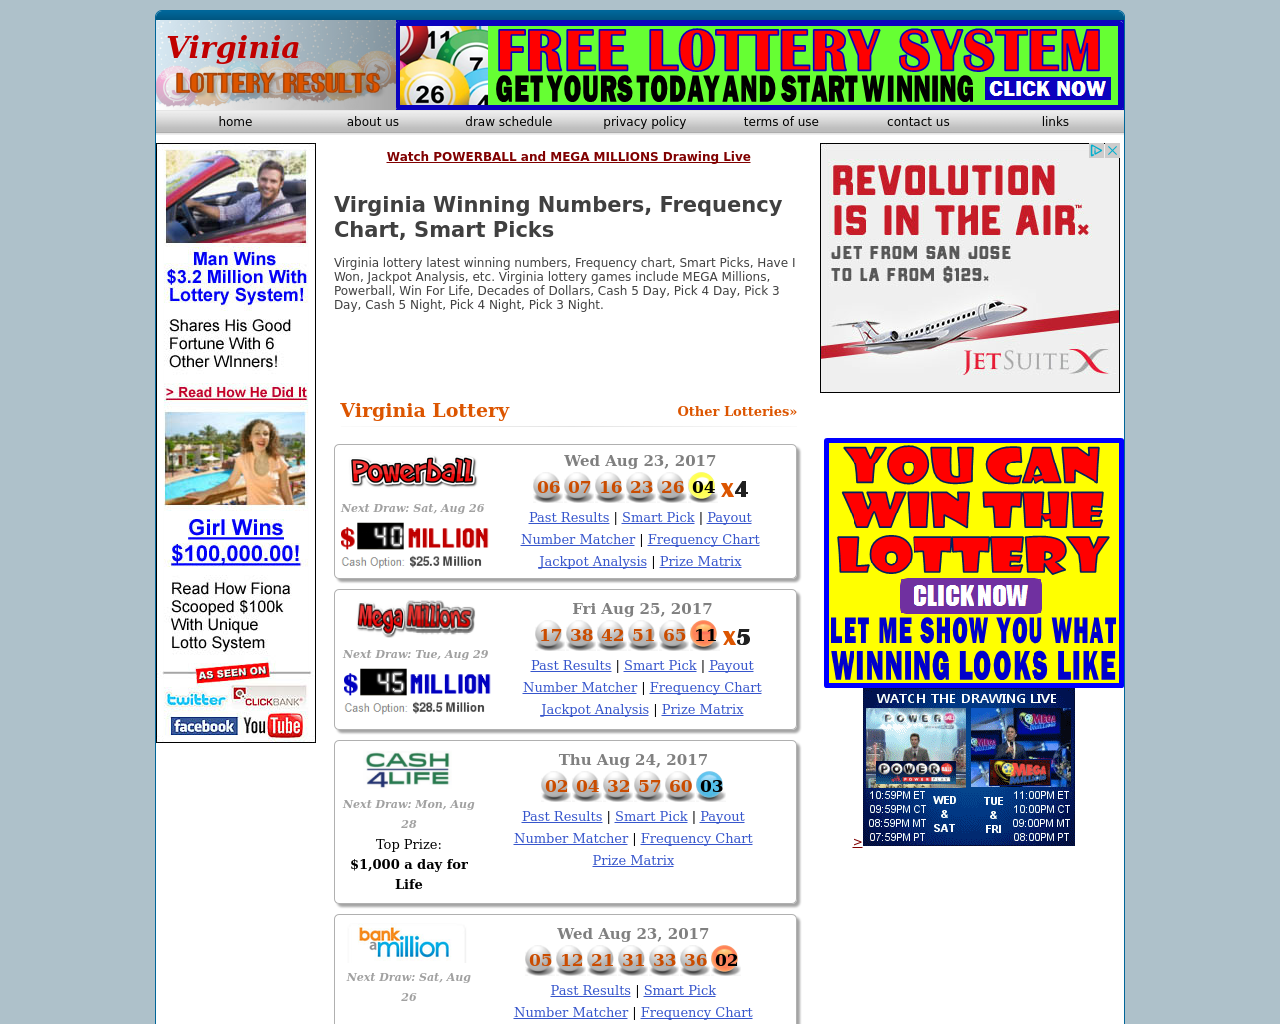 Virginia-Lottery-Live-Advertising-Reviews-Pricing